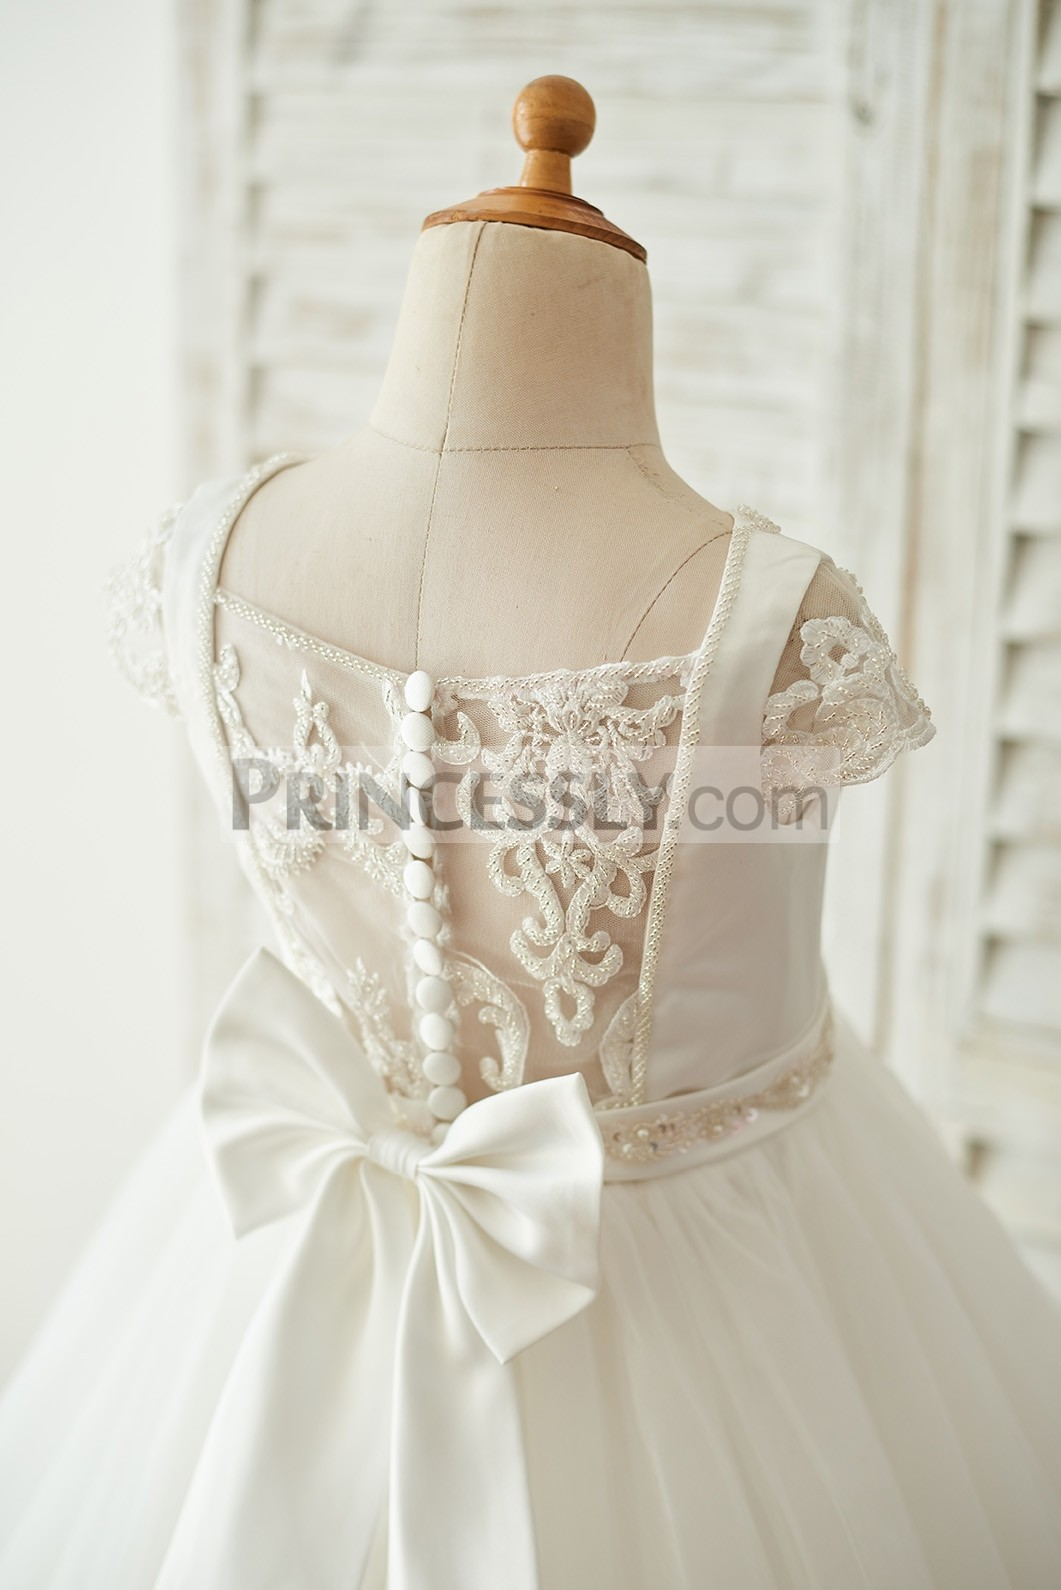 Straight neck sheer lace back with button closure & bow